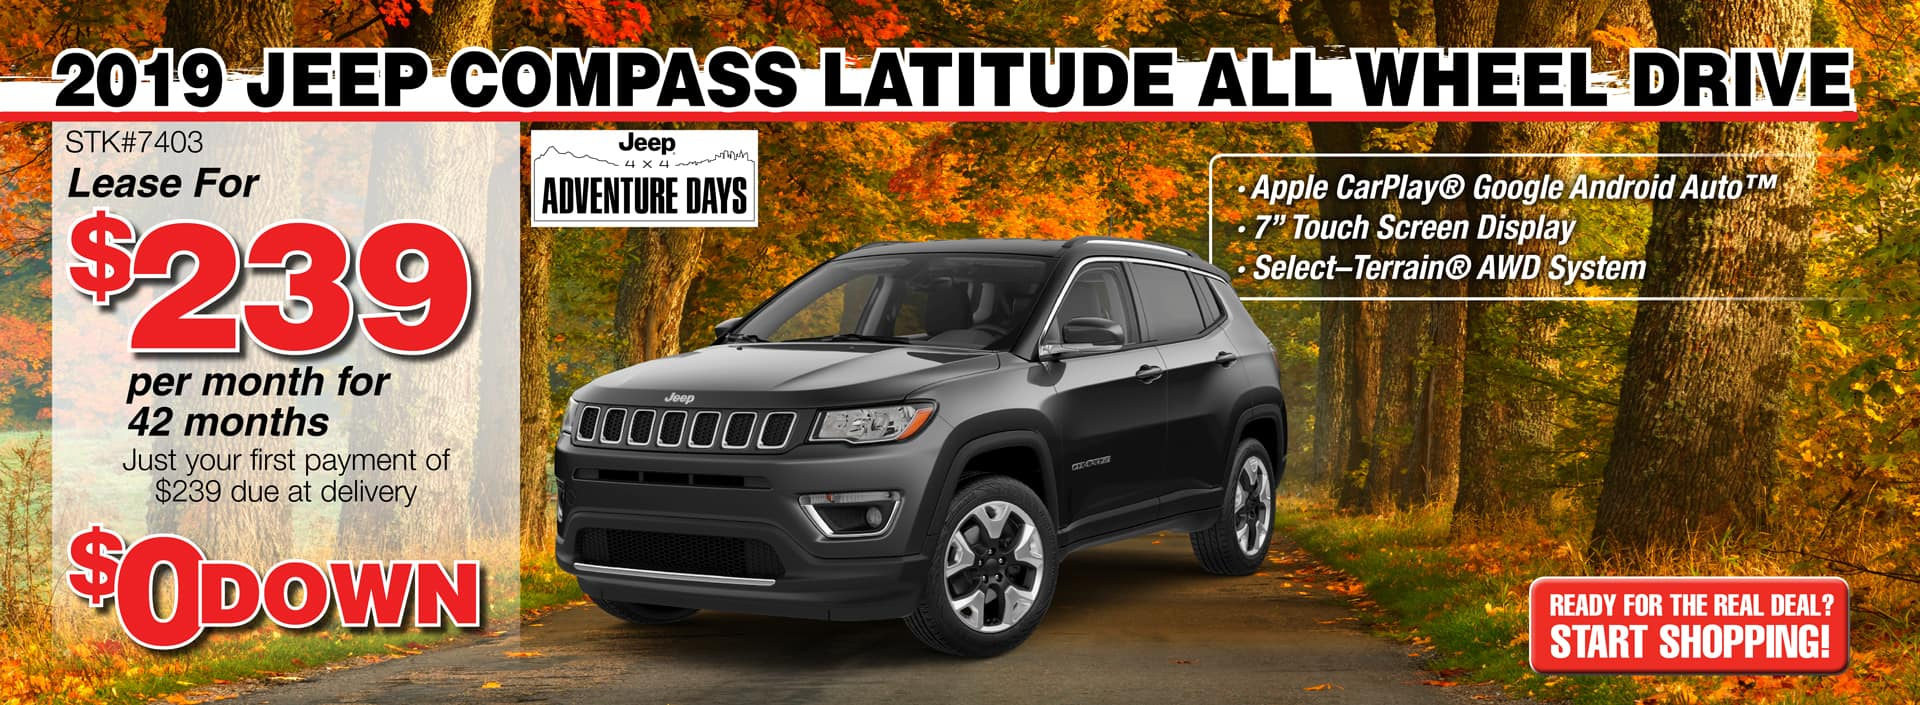 2019 Jeep Compass Latitude All Wheel Drive